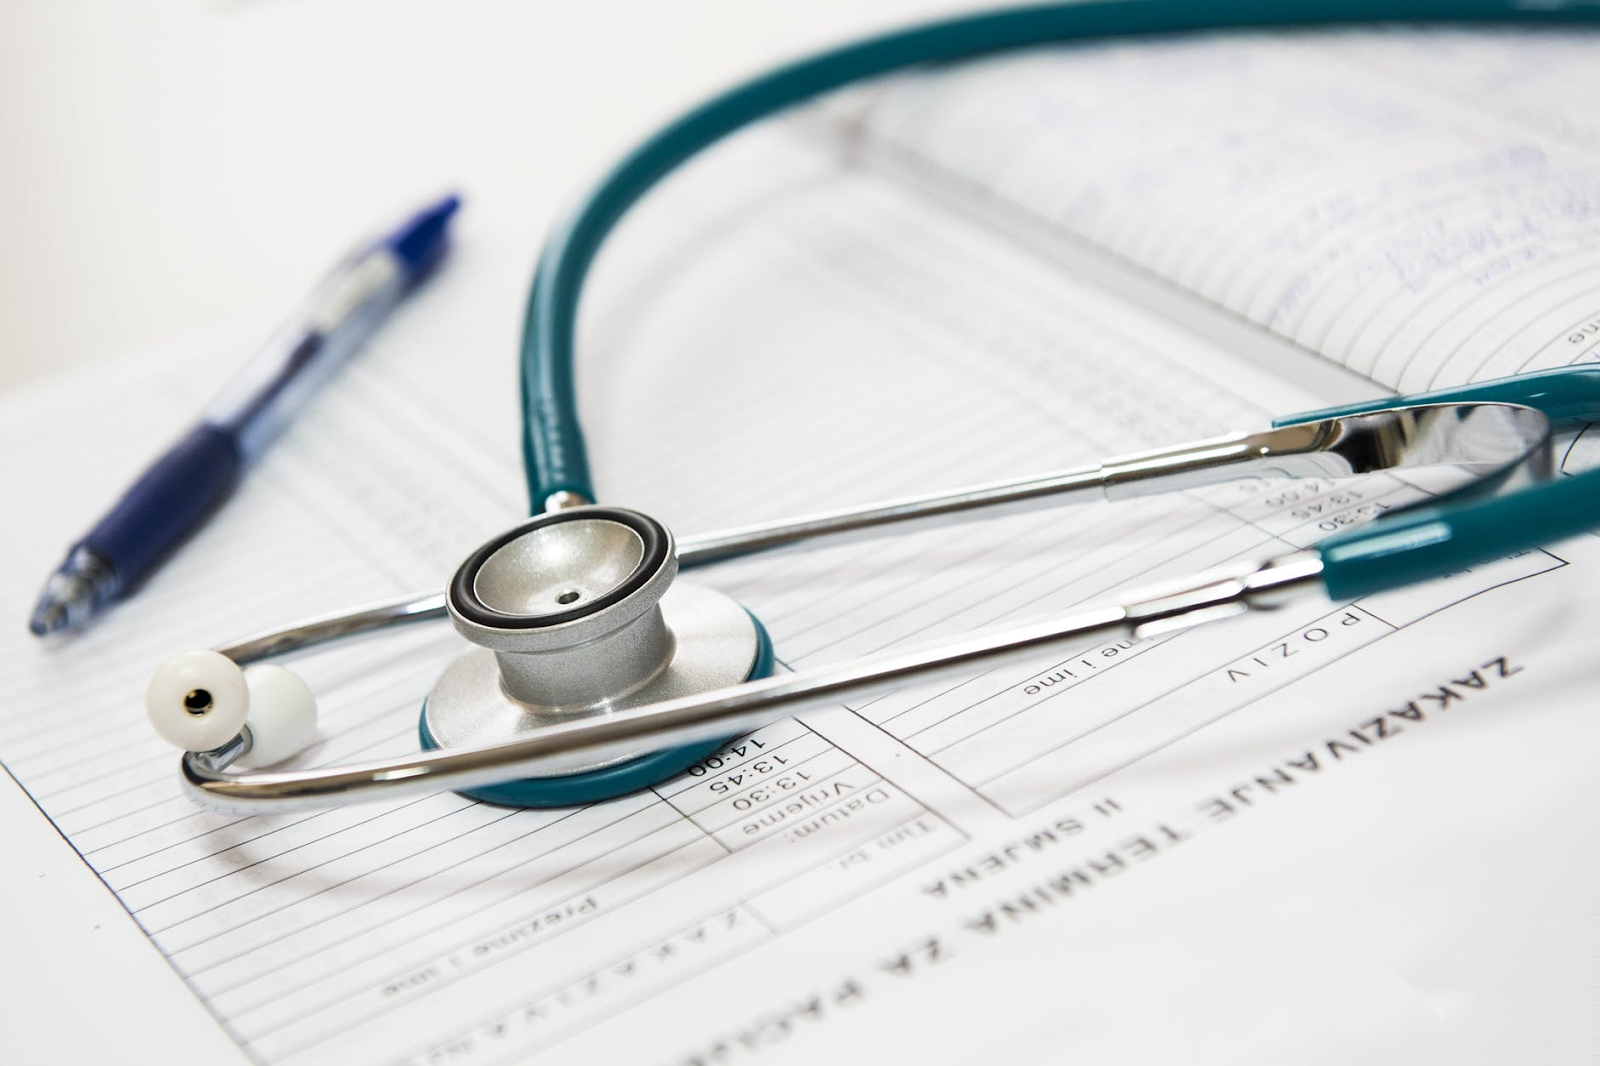 Talent retention: Stethoscope and medical log represent health benefits